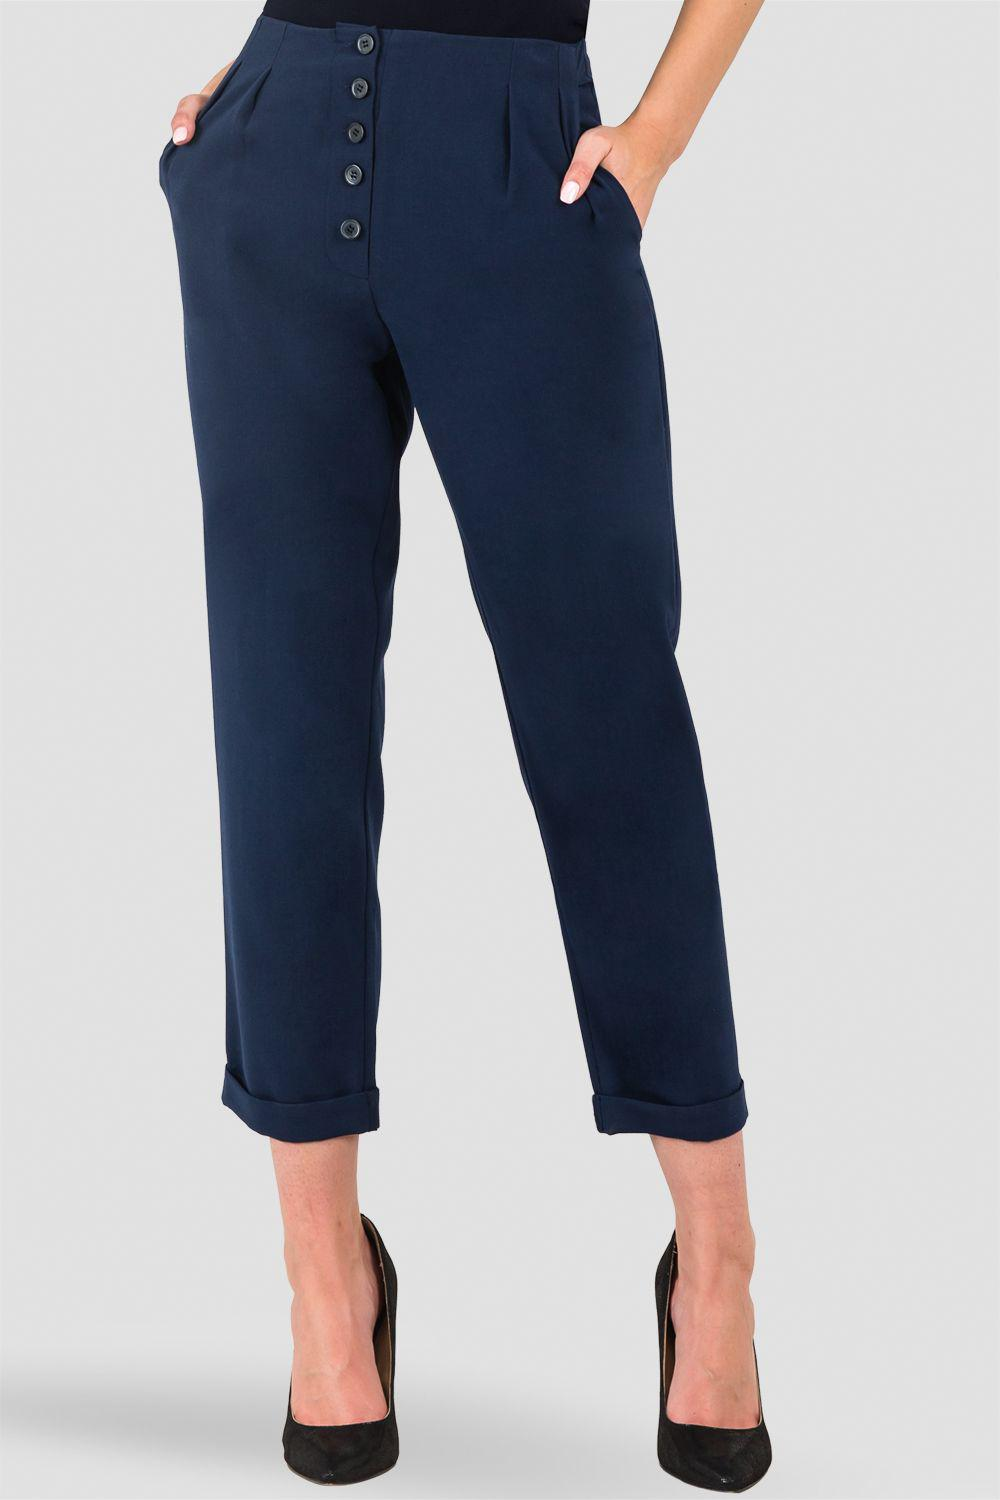 Francine Midnight Blue Hollywood Waist Cropped Button-Up Carrot Trouser Pants